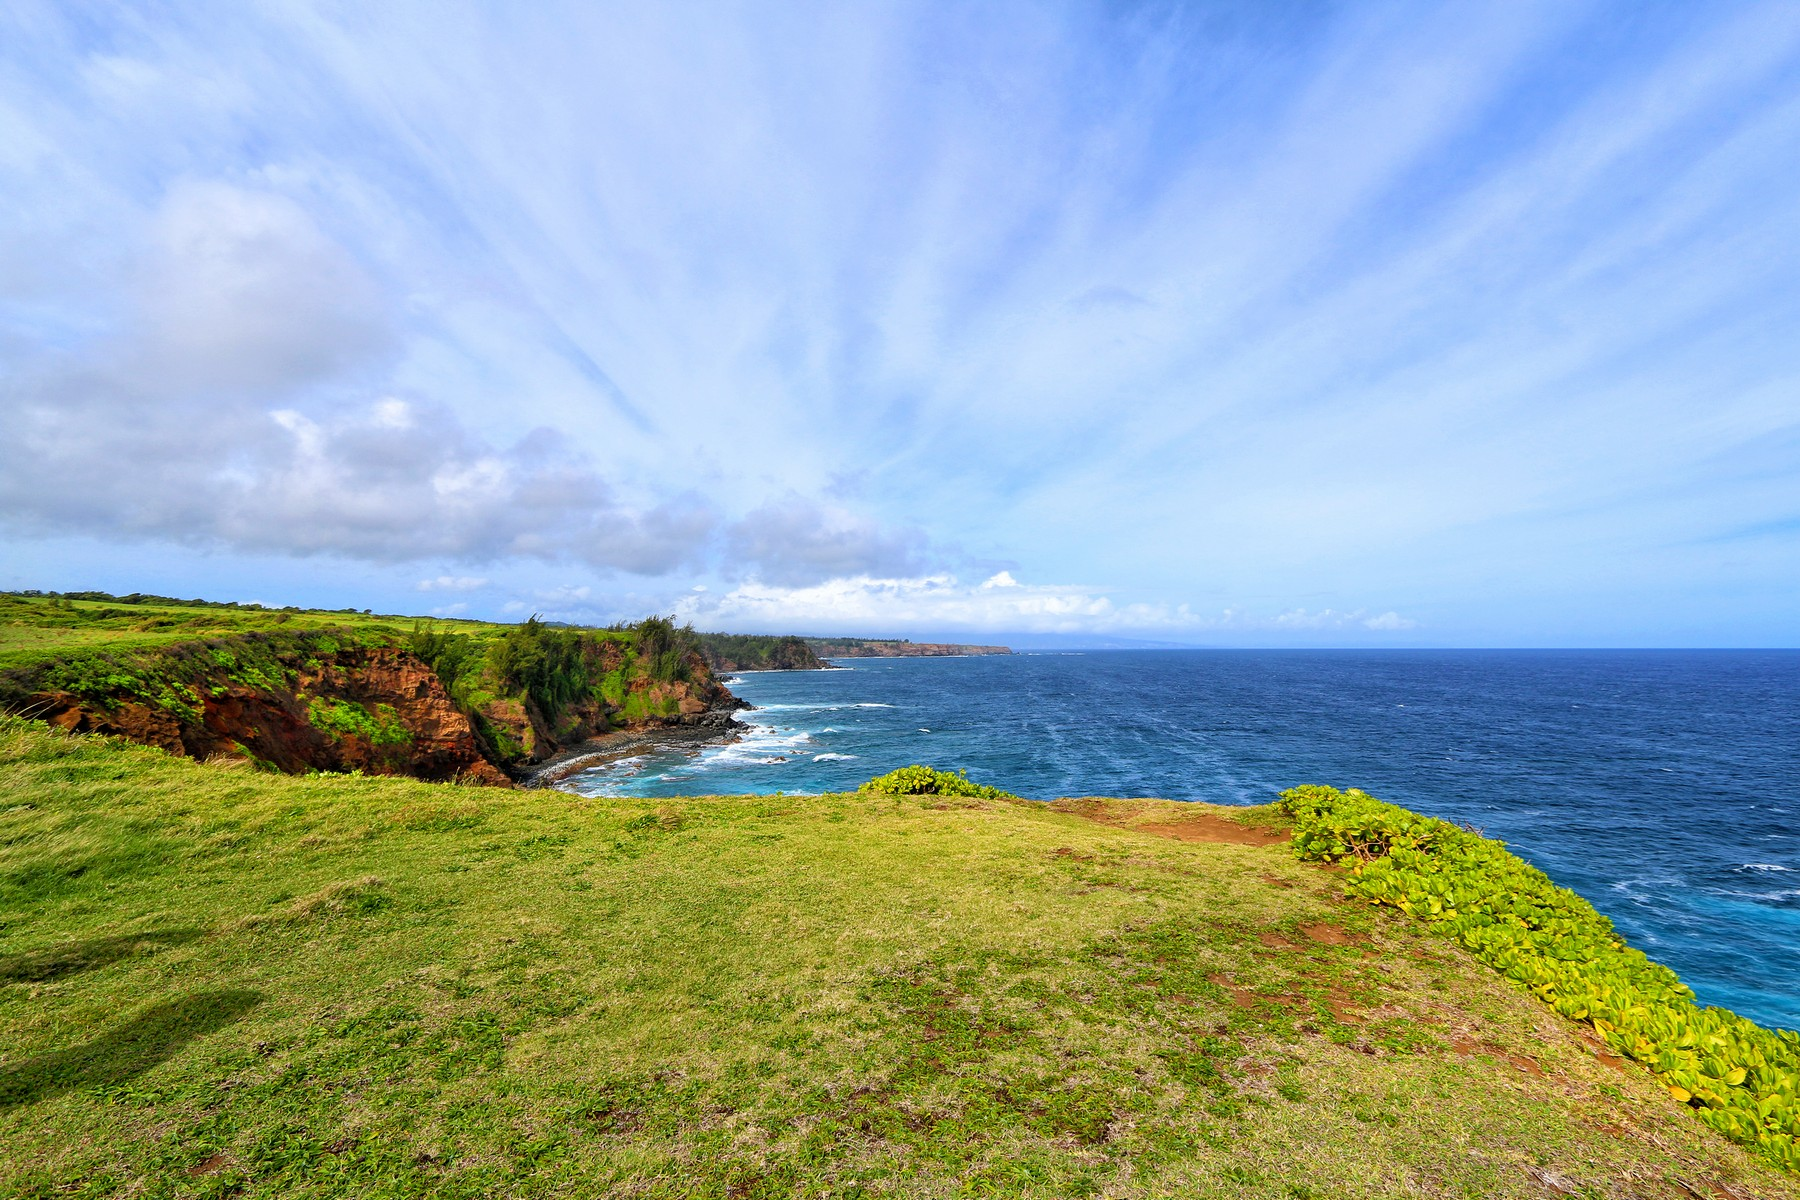 Terreno por un Venta en Maui's Exclusive North Shore Community 500 Kai Huki Circle, Lot 15 Haiku, Hawaii, 96708 Estados Unidos